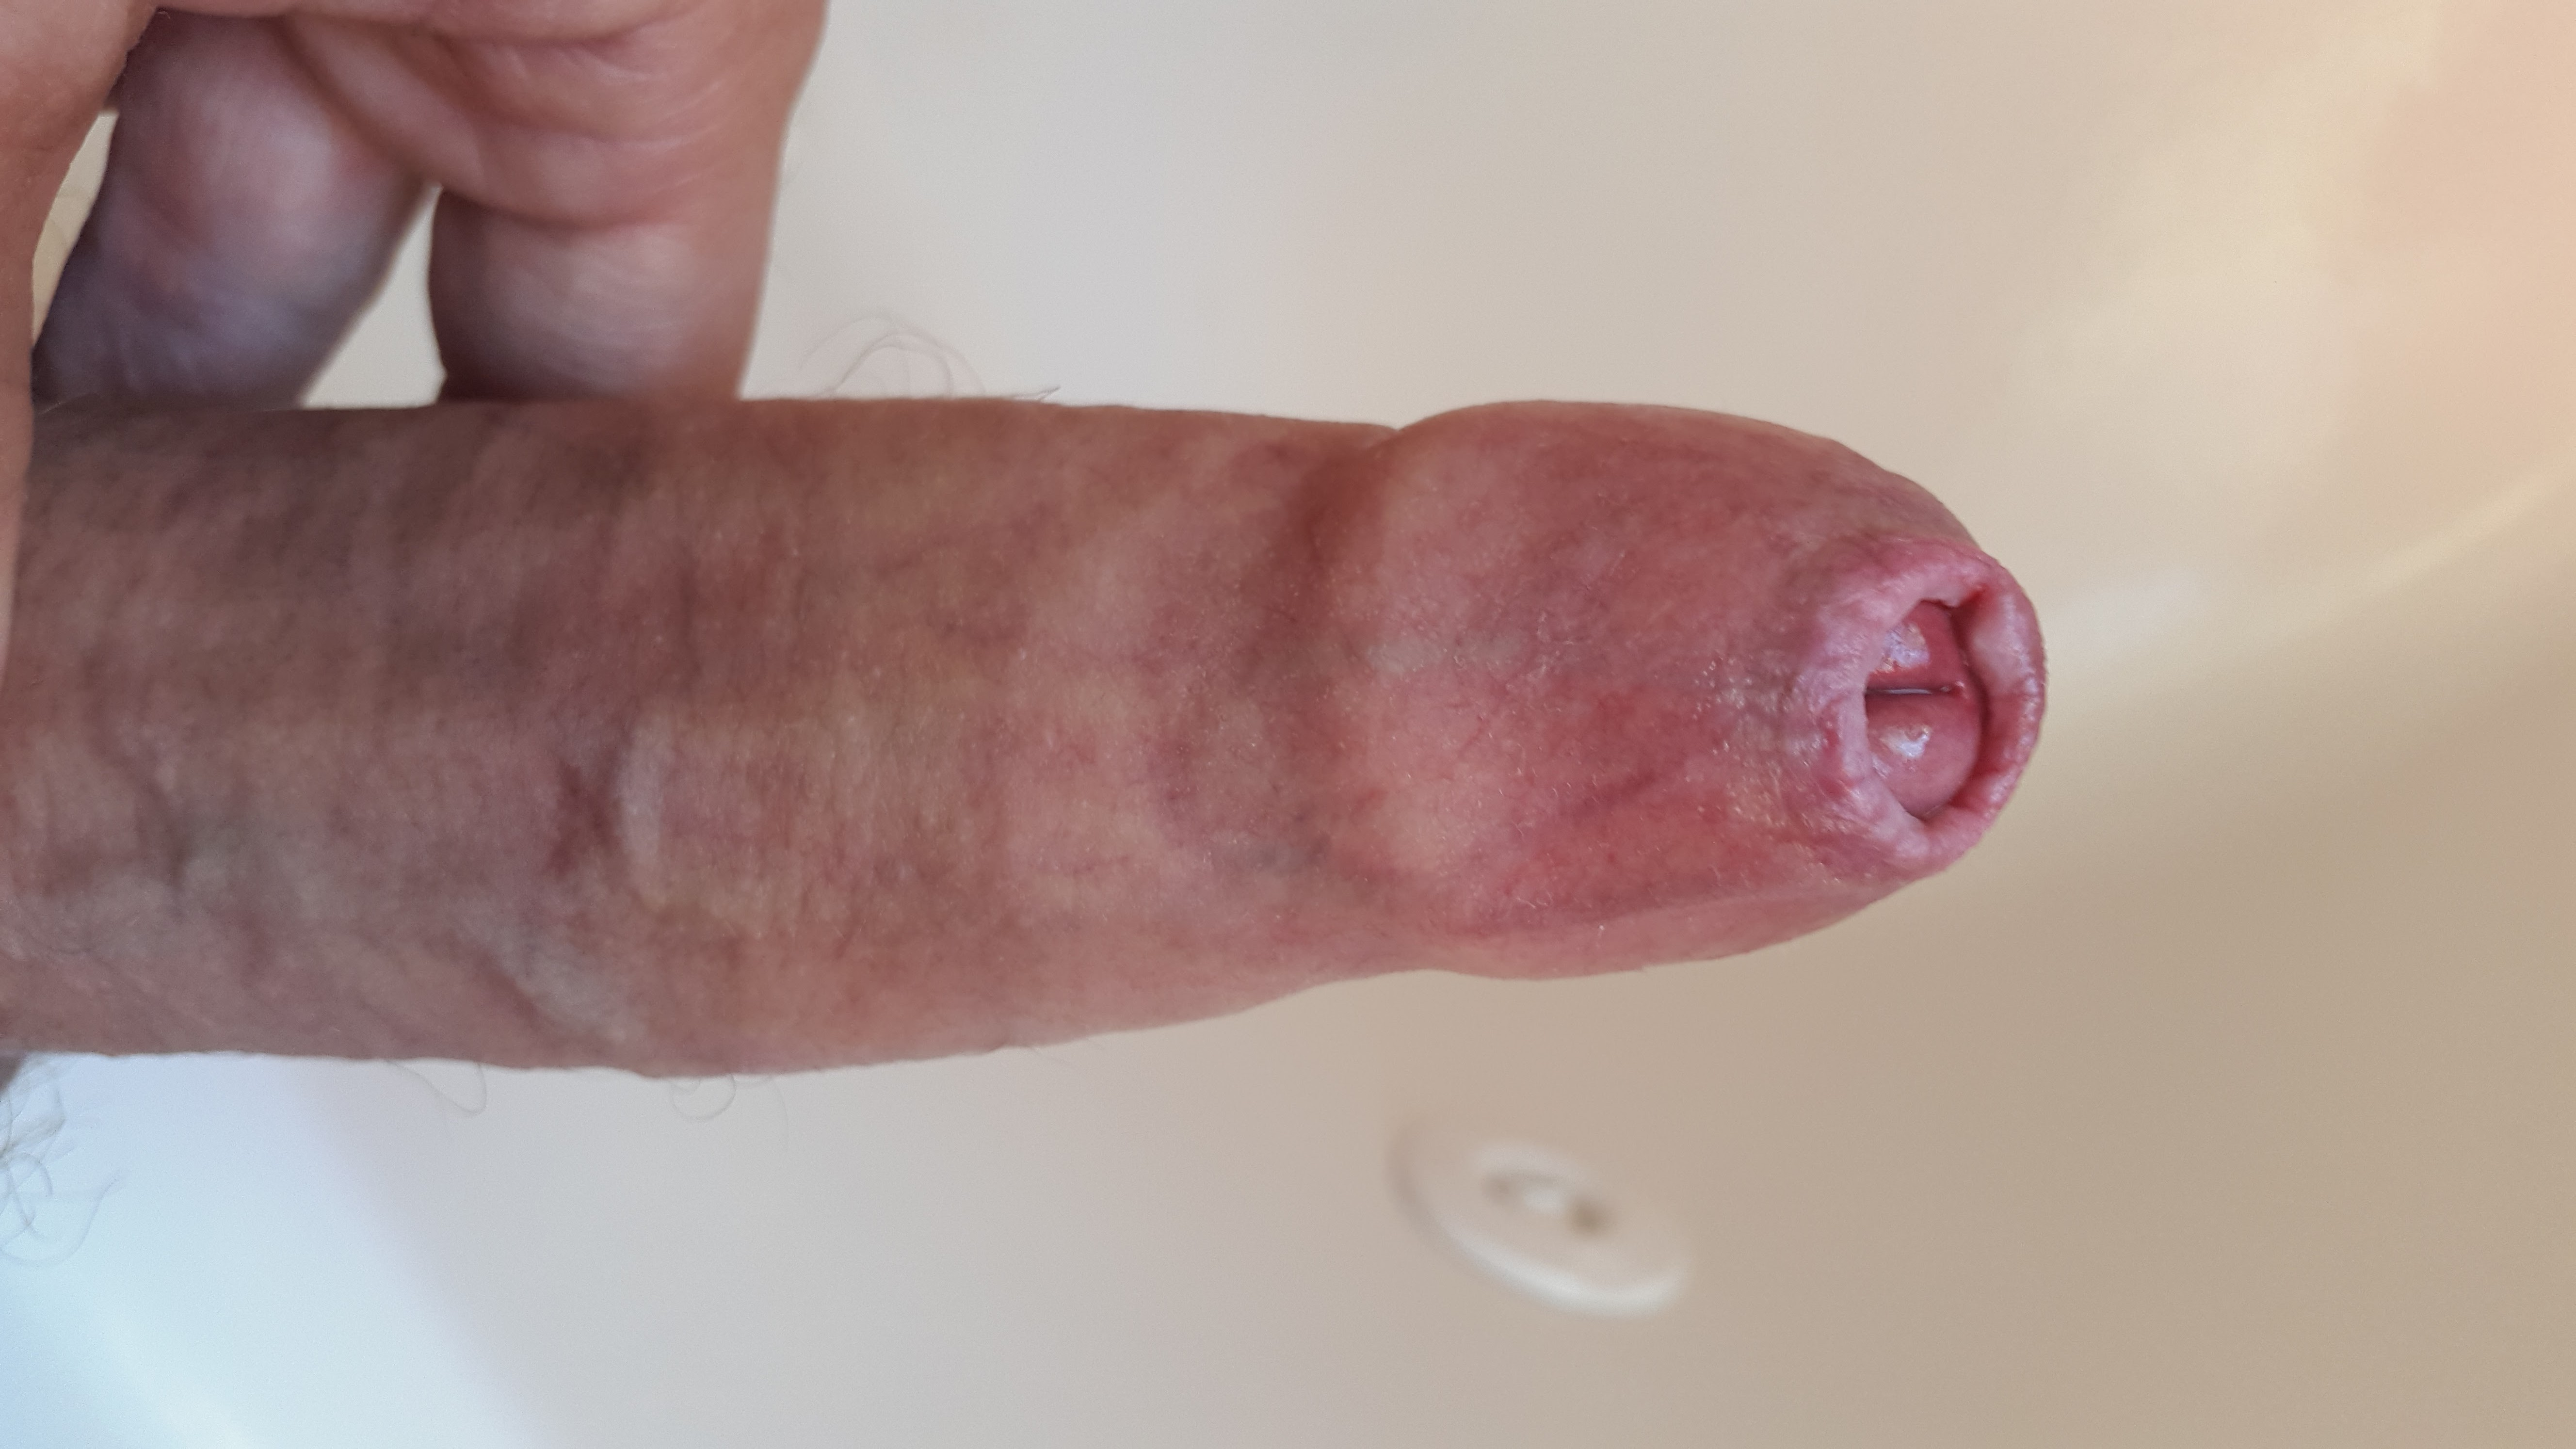 Penis after stretching phimosis